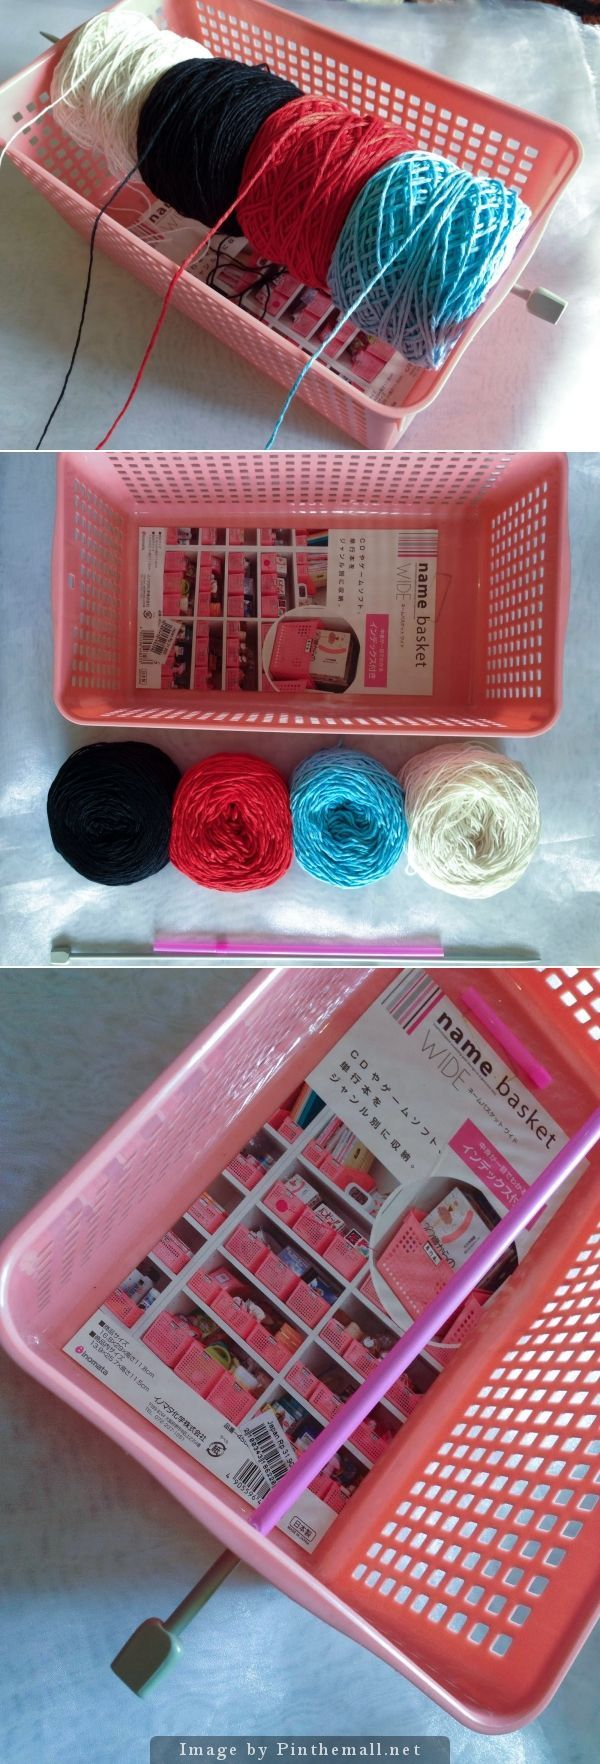 """Organize the yarn you're using in a project with this simple DIY. You need: 1 plastic basket with holes, 1 knitting needle, 1 drinking straw, and your yarn wound as in the picture. Voila! Easy as pie and there's room for your hooks, needles, scissors and pattern underneath, too!"" 4U from the #KnittingGuru"